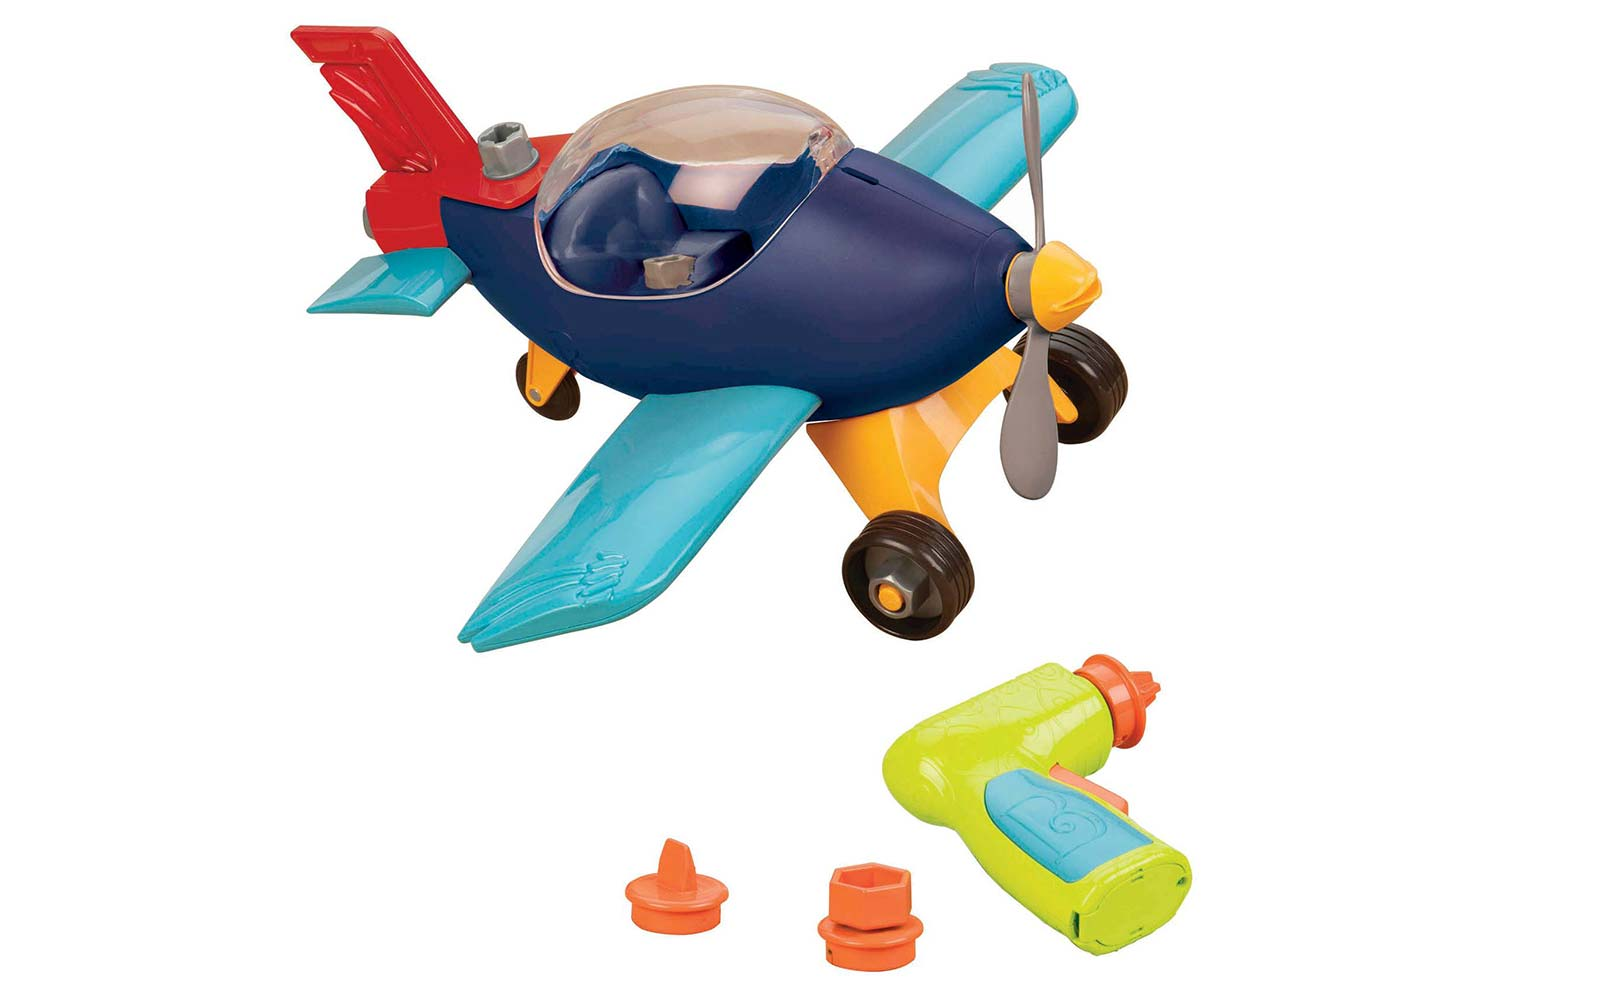 build a ma jigs airplane toy